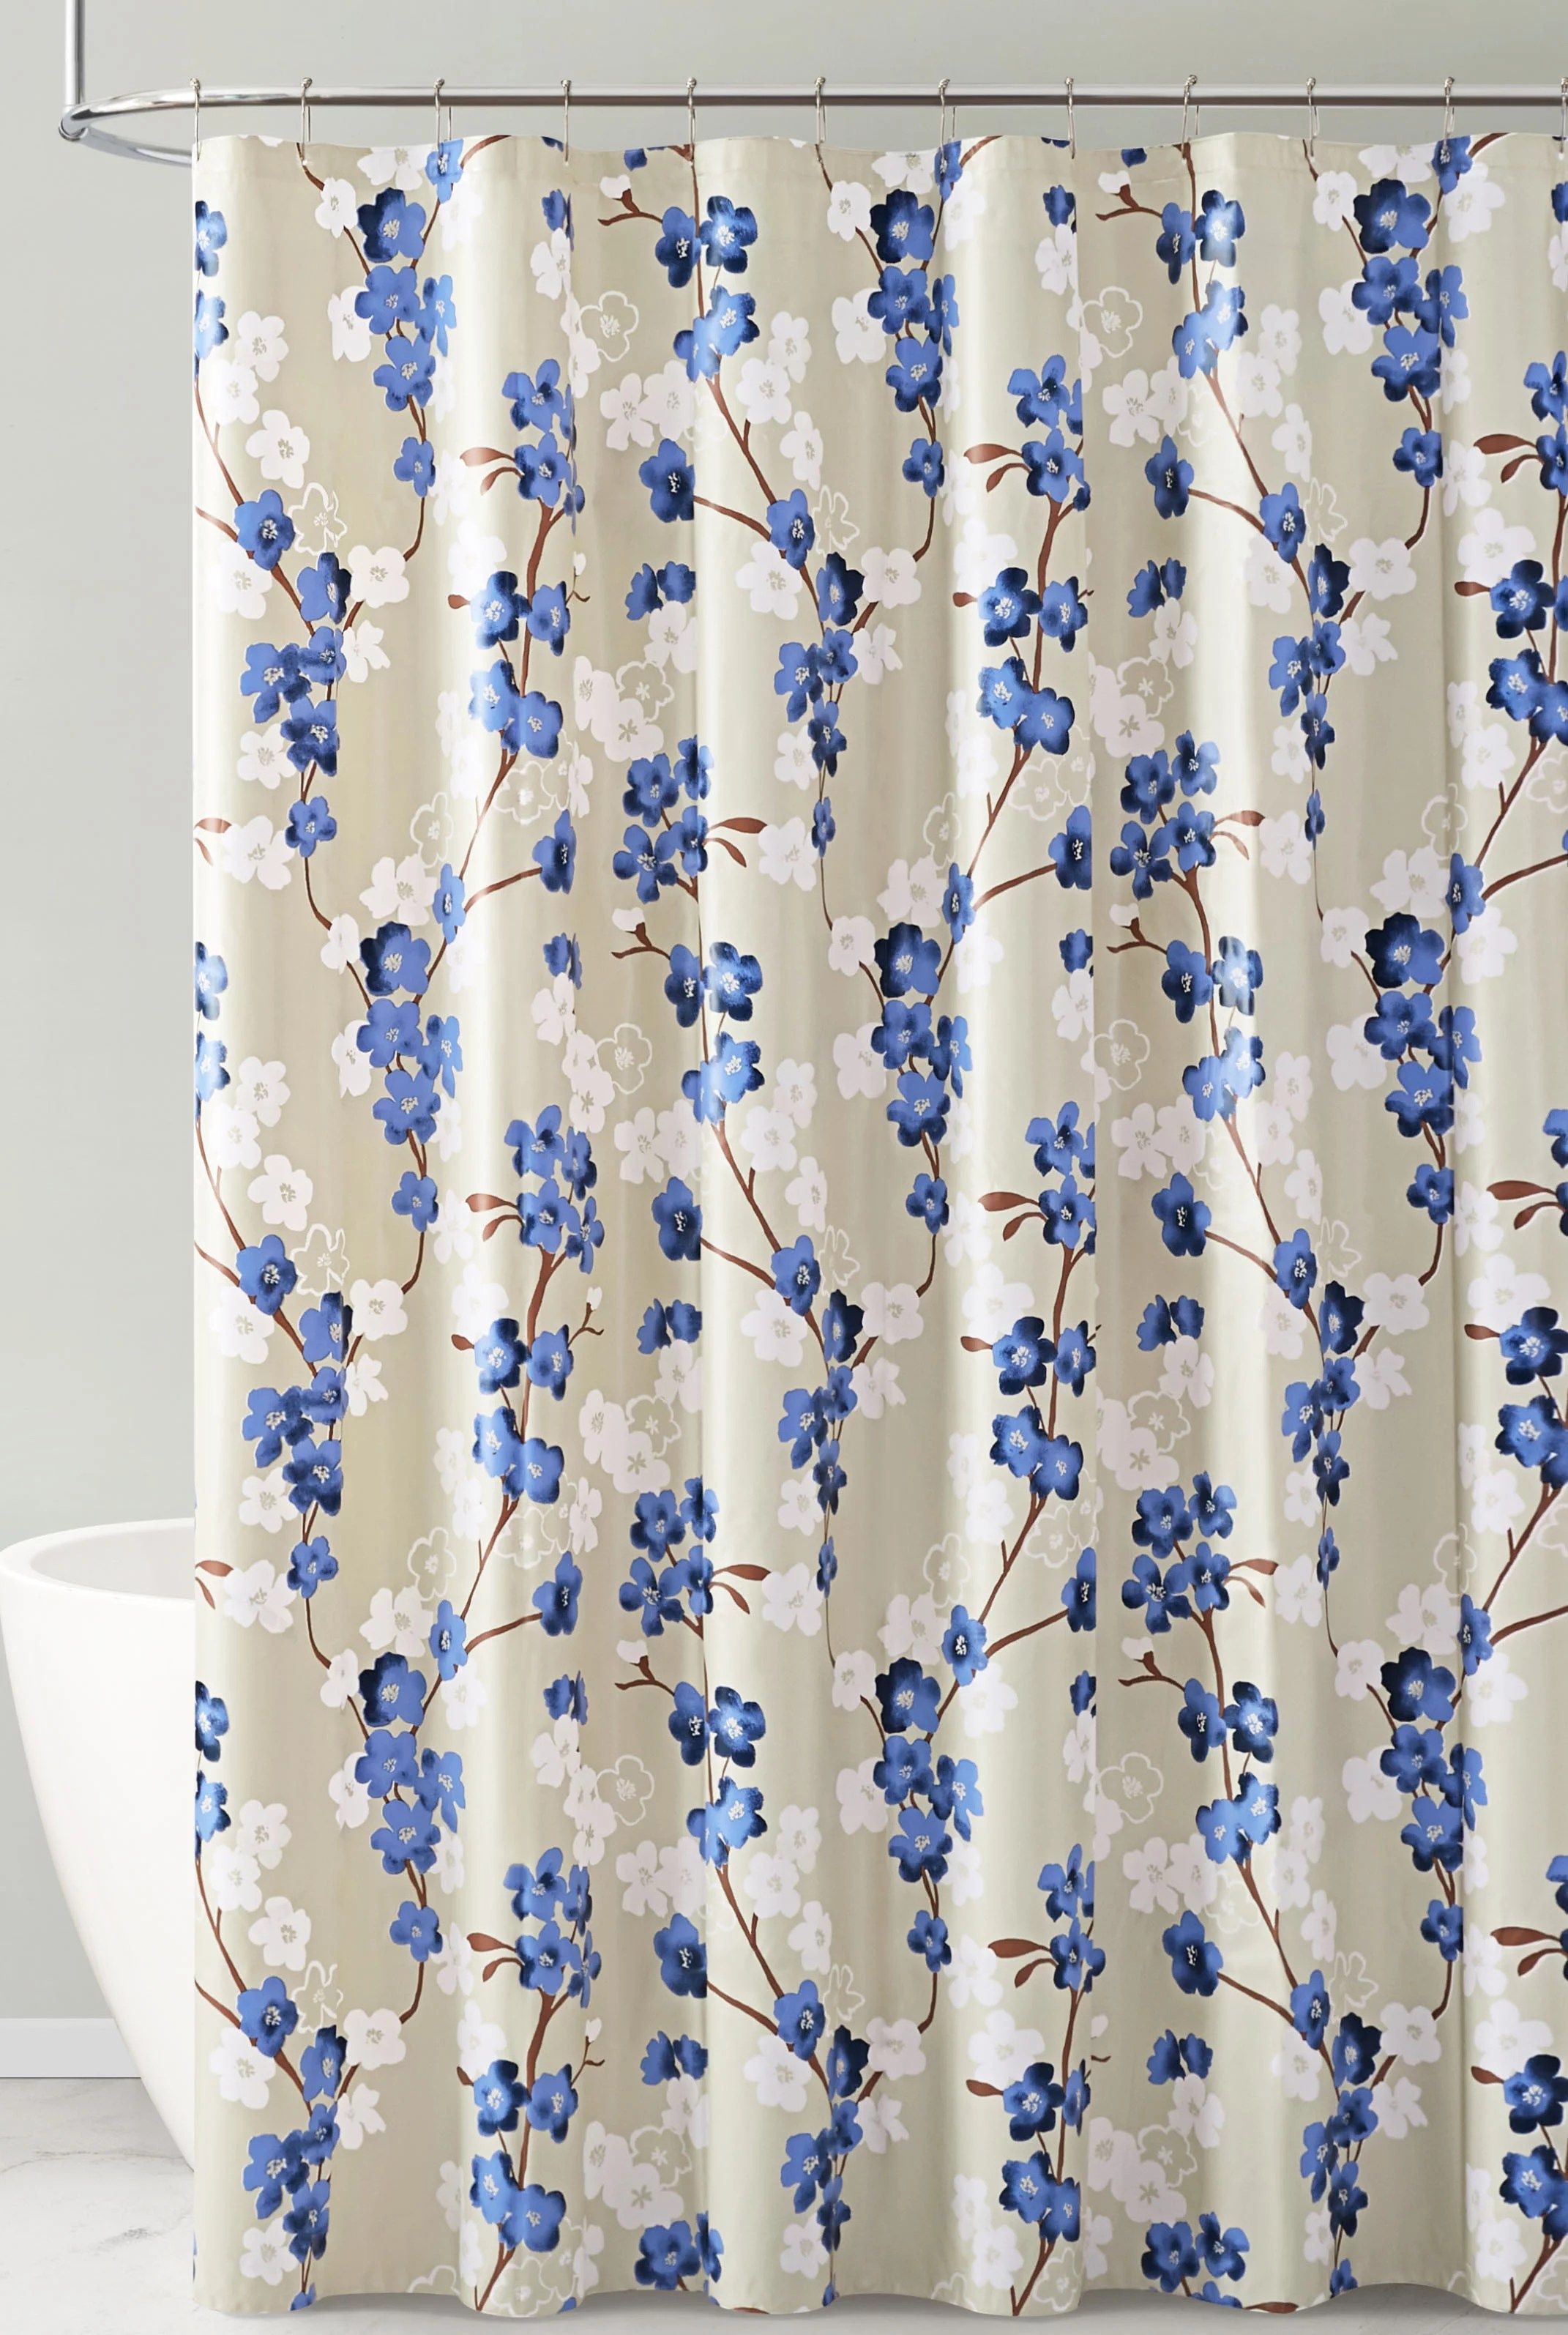 navy white and taupe floral design peva shower curtain liner odorless pvc and chlorine free biodegradable mildew free eco friendly size 72in x